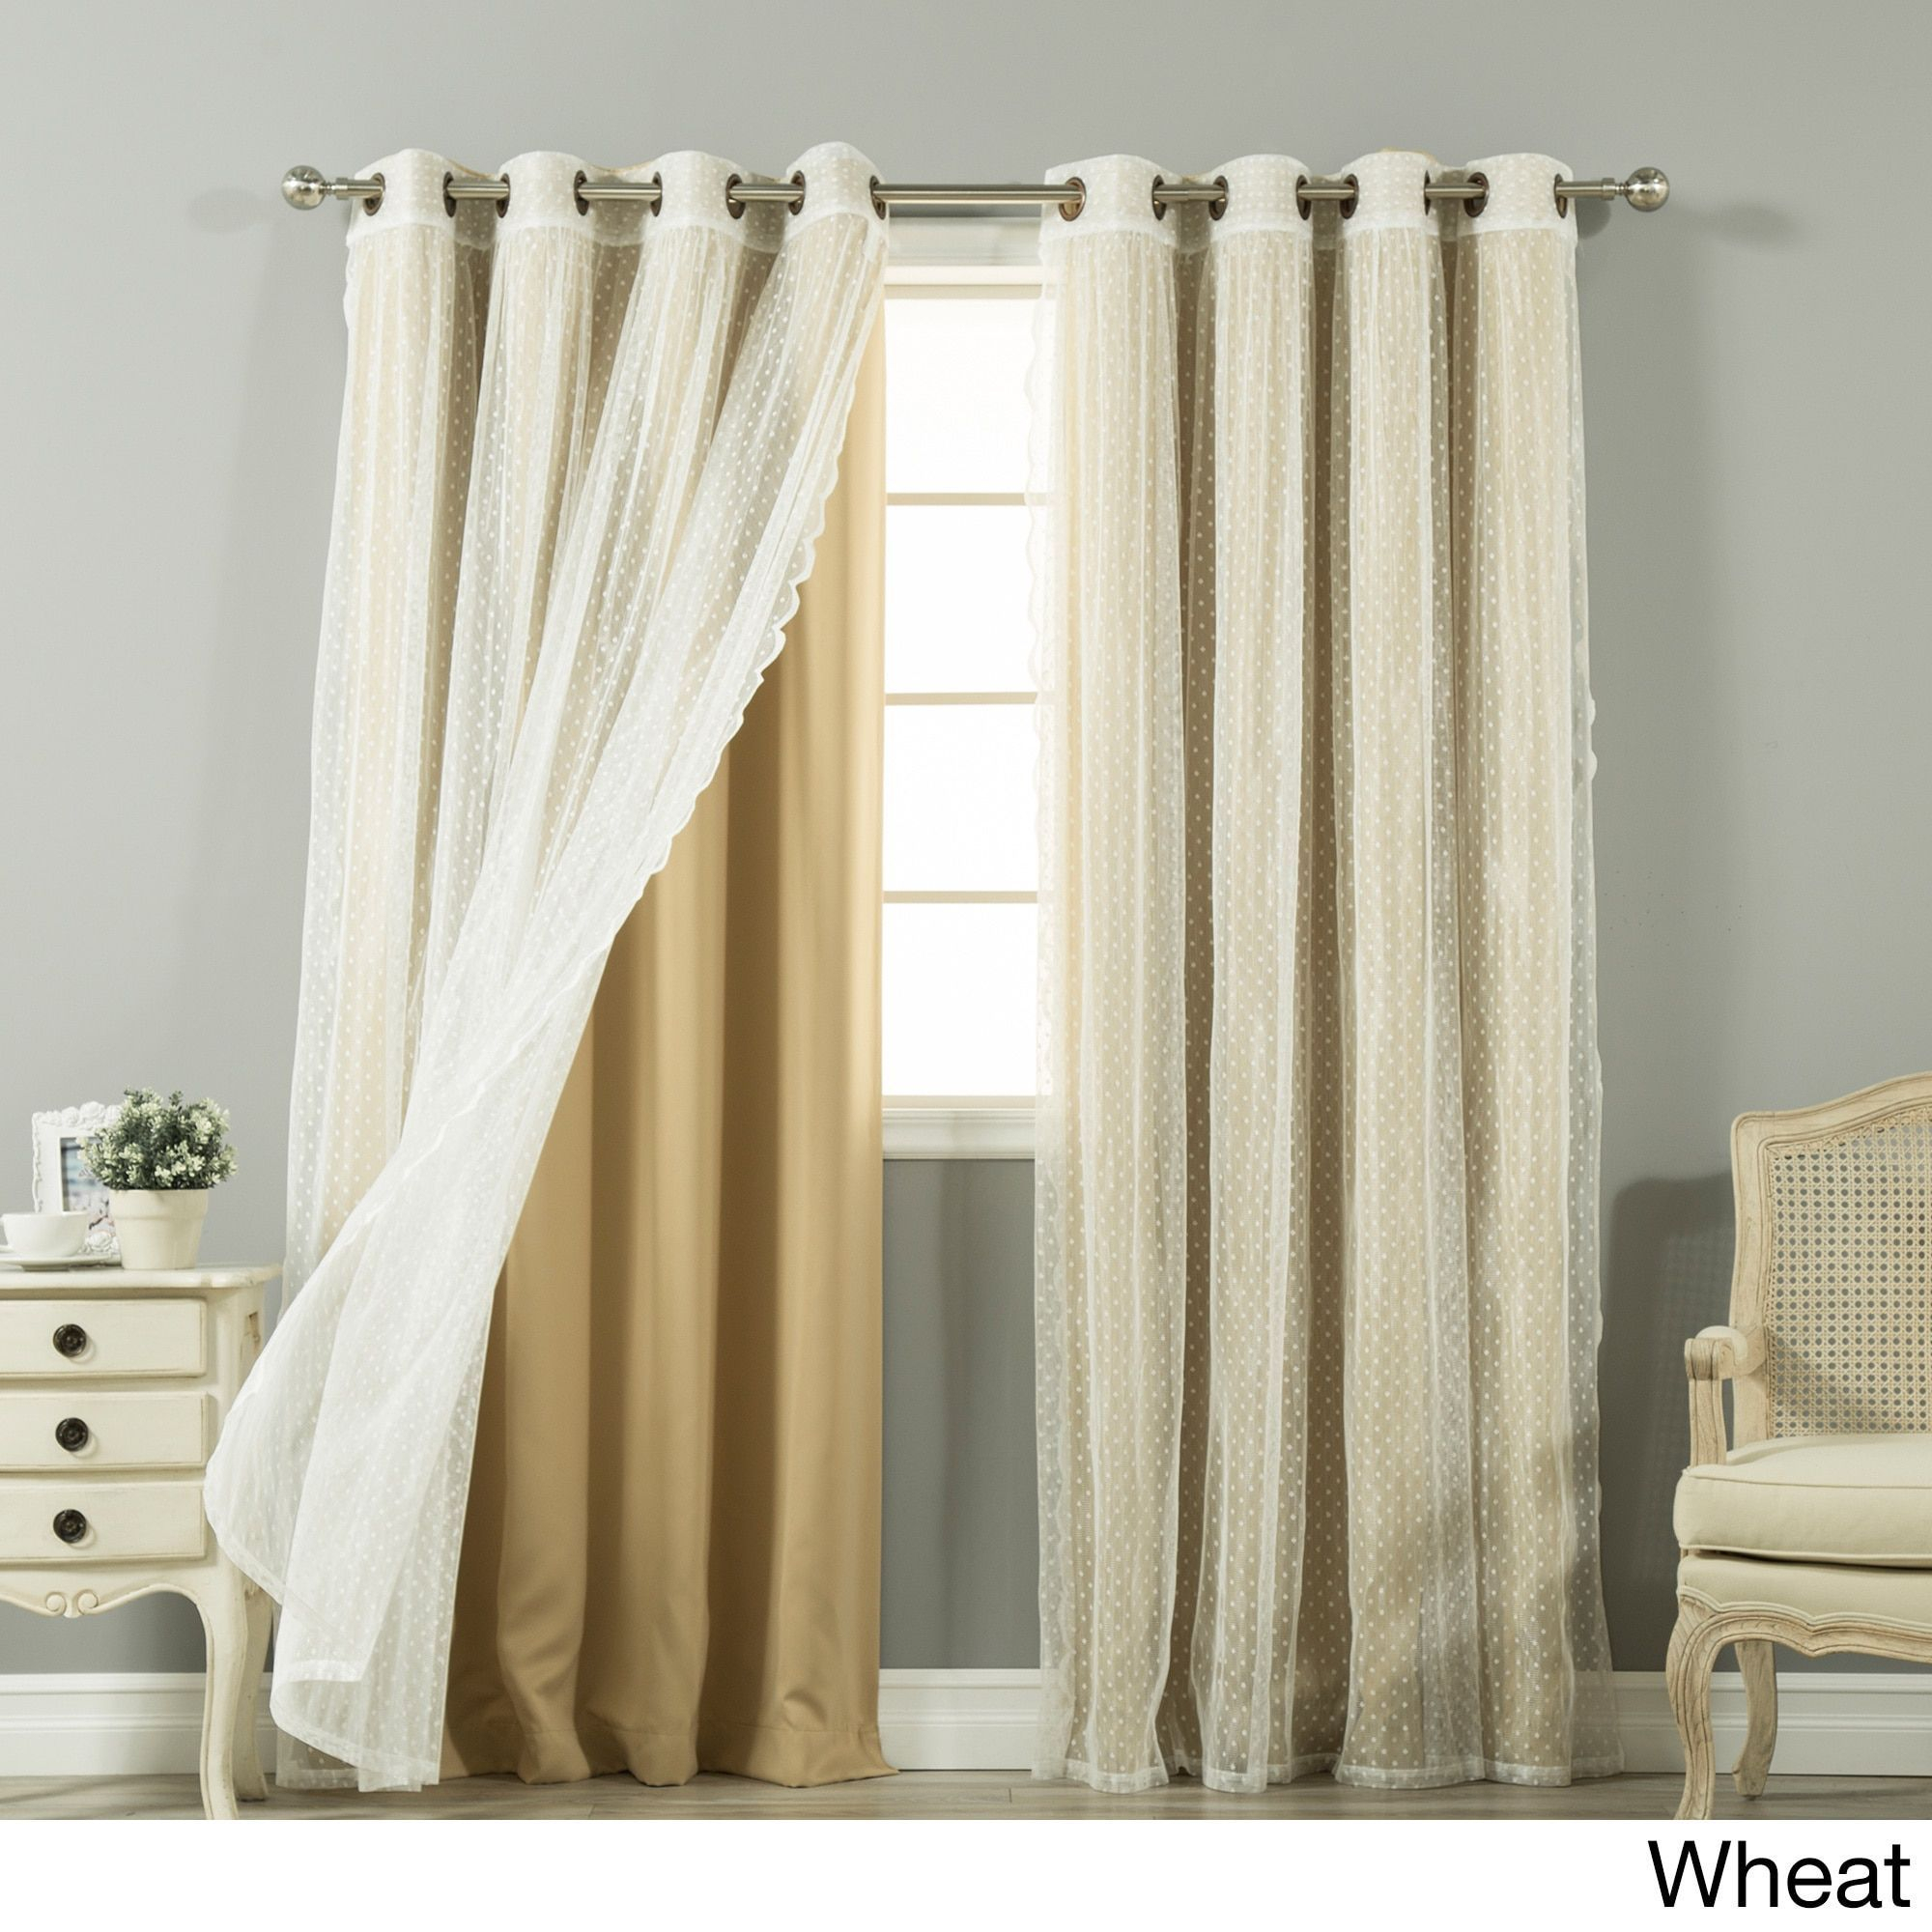 Aurora Home Mix And Match Curtains Blackout And Dot Sheer 84 In Tulle Sheer With Attached Valance And Blackout 4 Piece Curtain Panel Pairs (View 18 of 30)